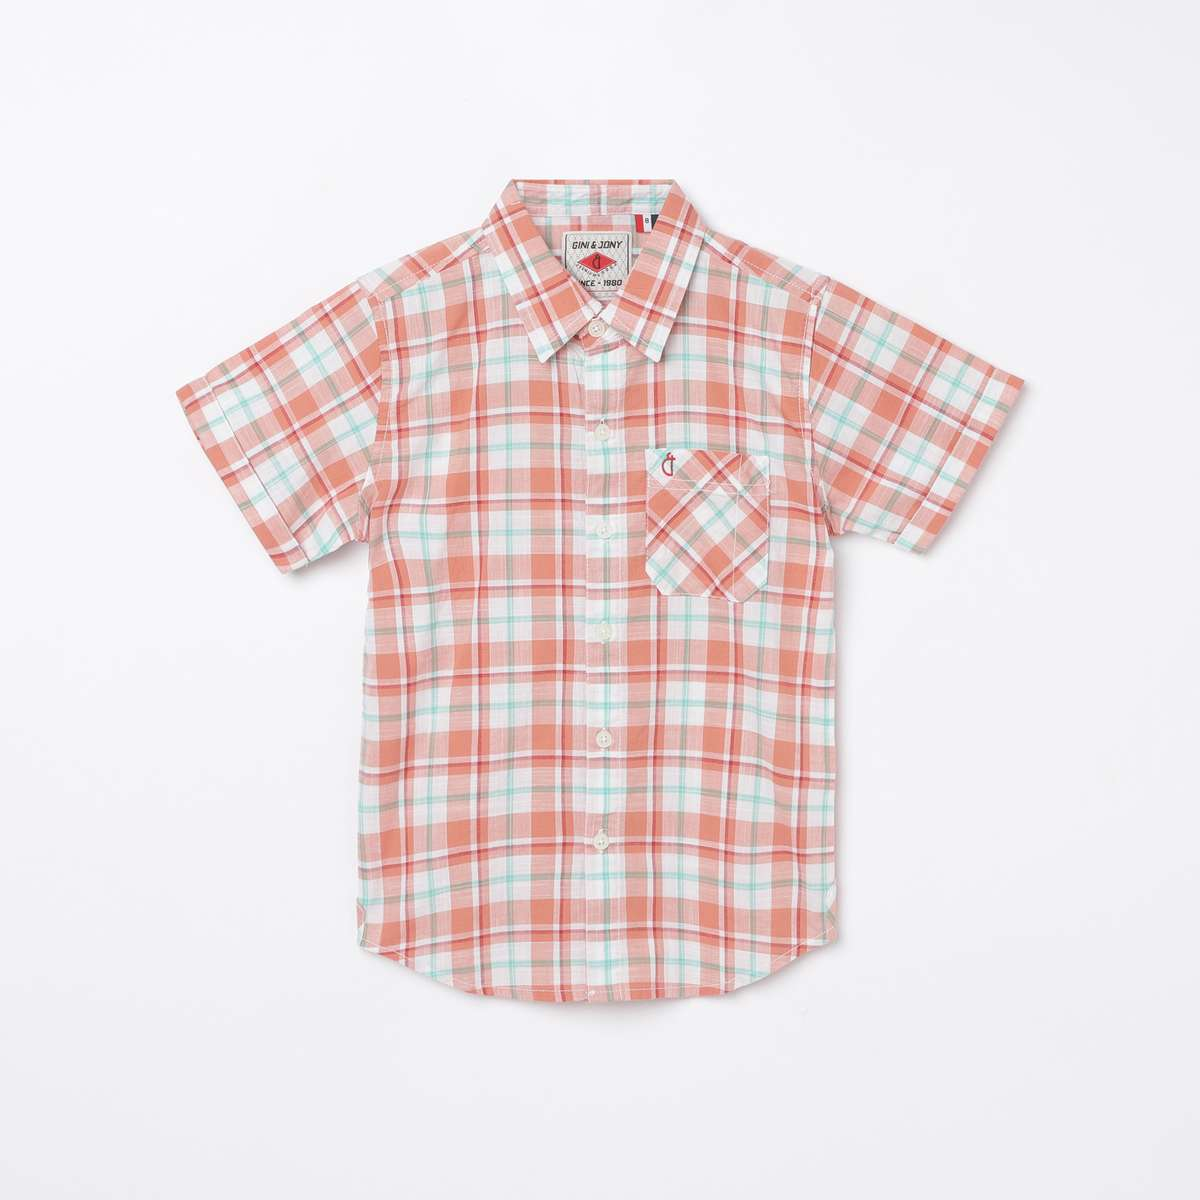 GINI & JONY Boys Checked Short Sleeves Shirt